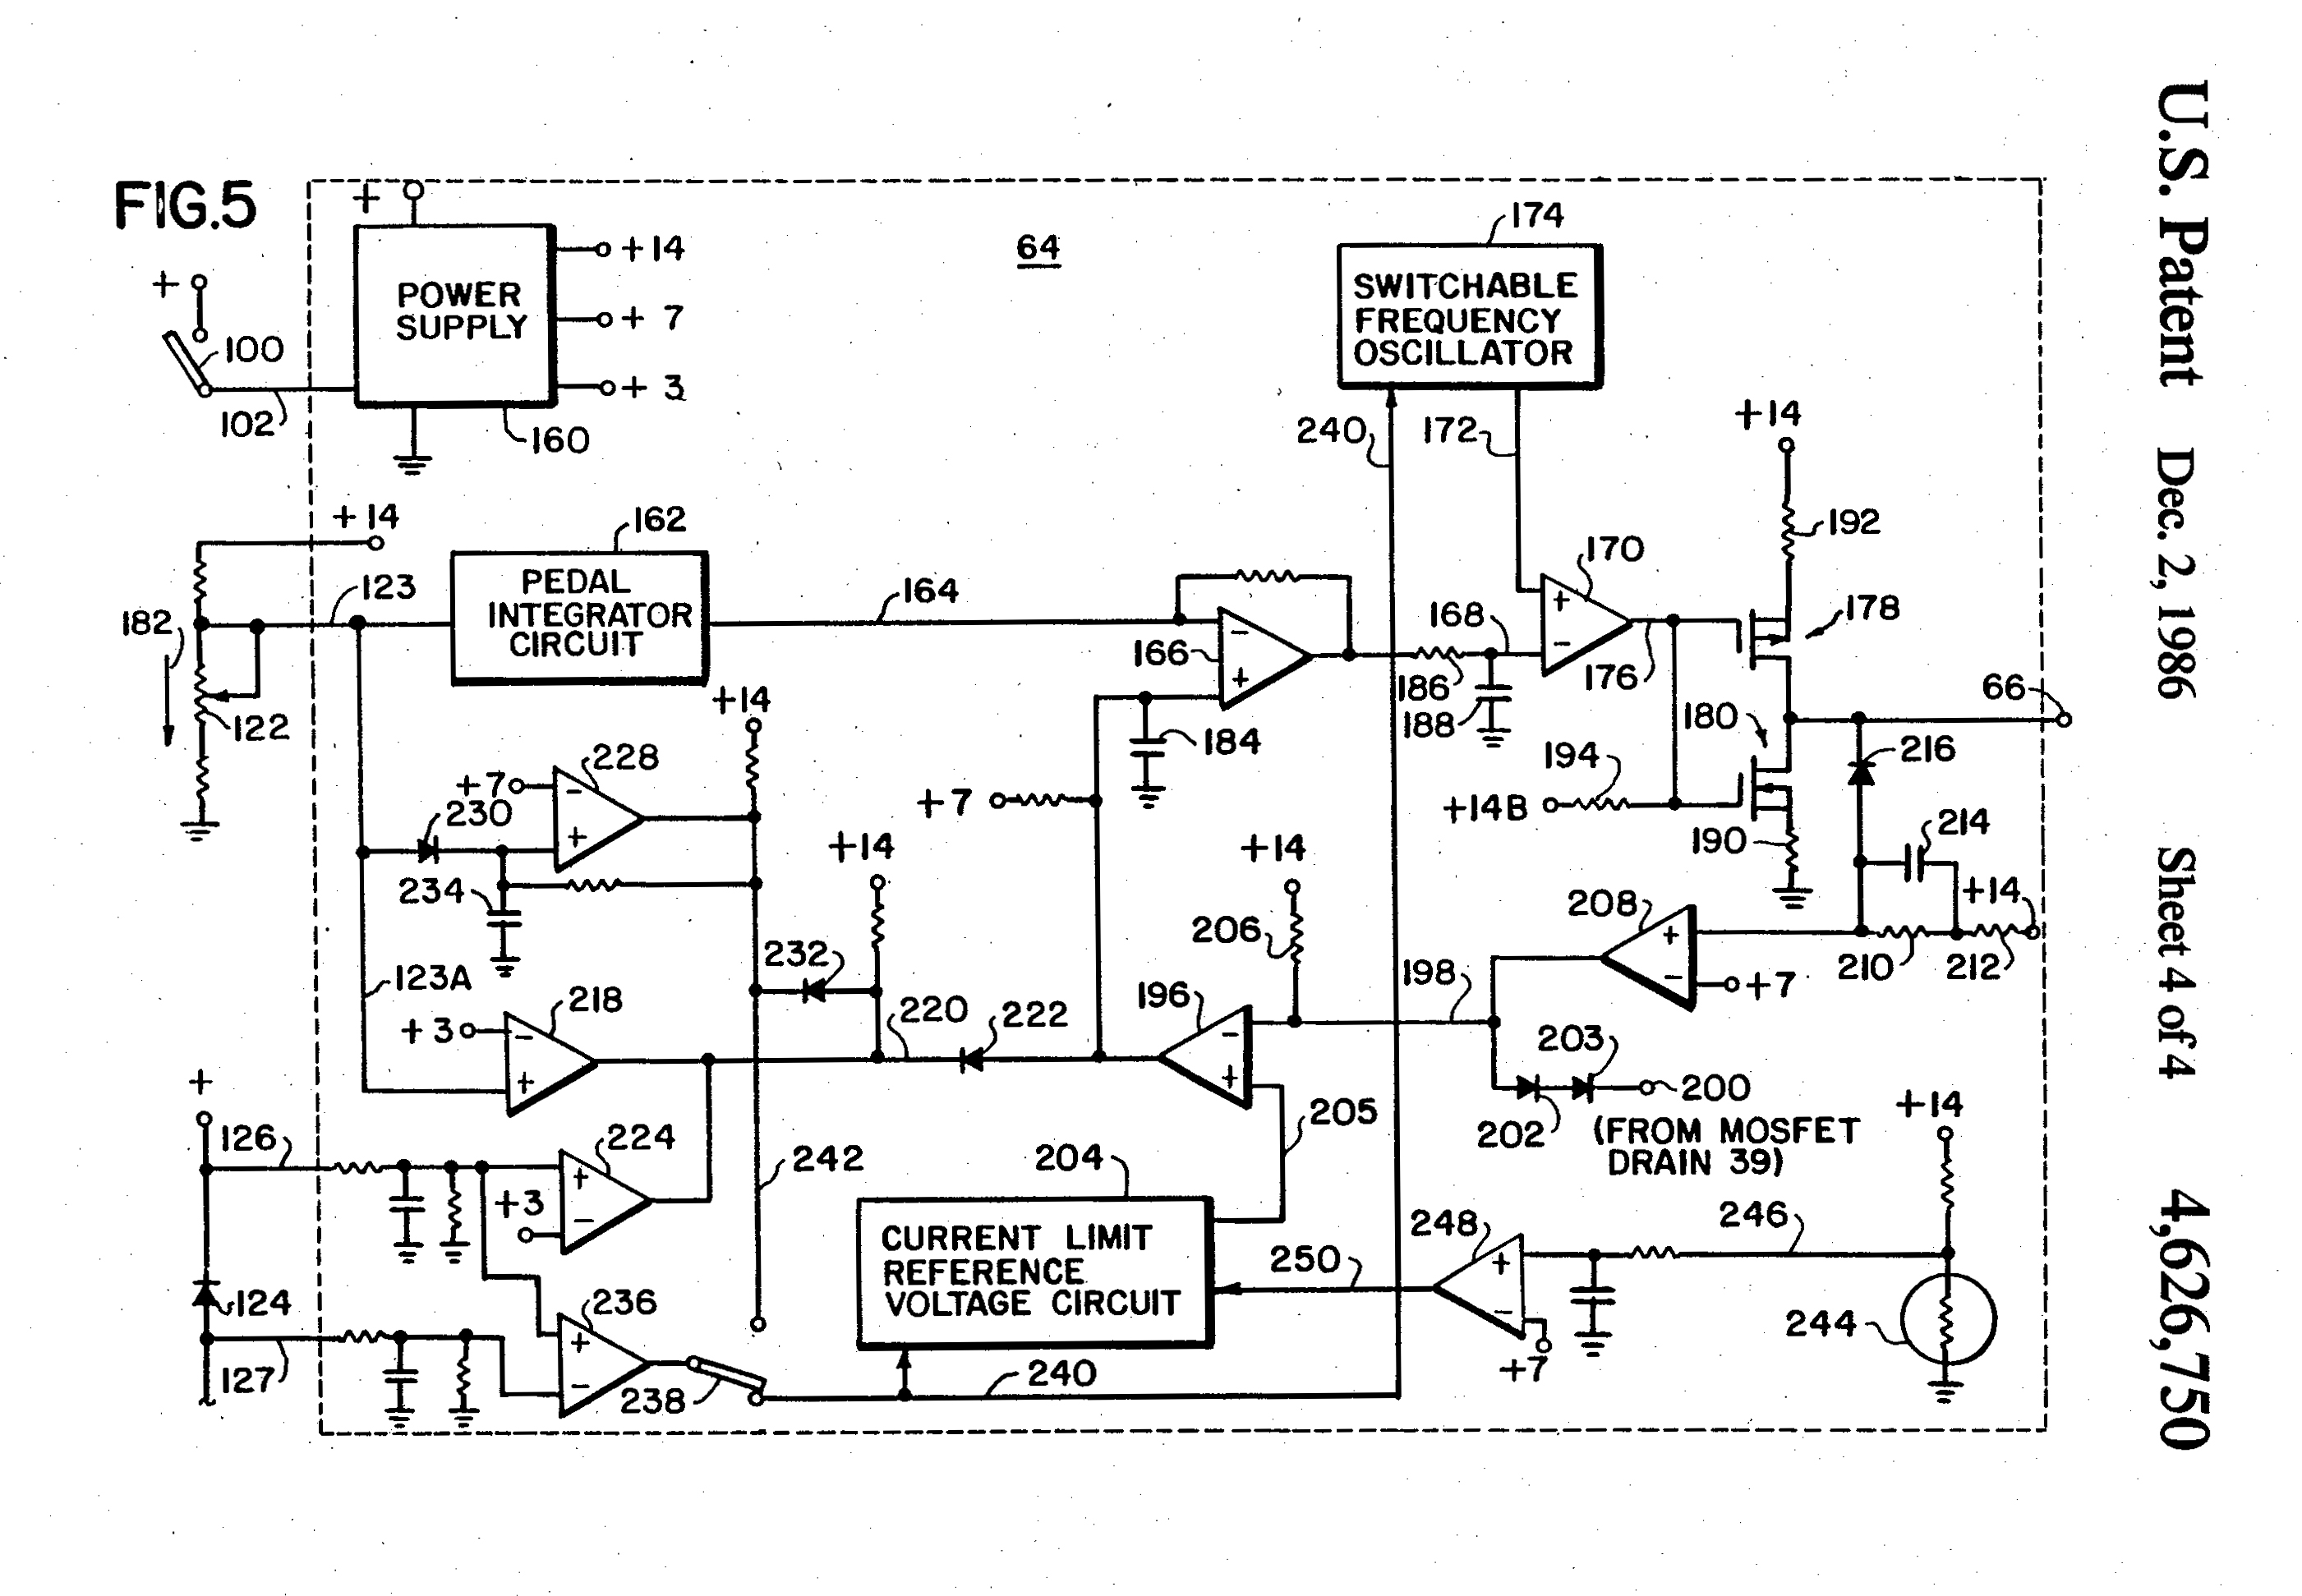 2001 ez go txt wiring diagram what do the lines represent in an electric field curtis 1204 controller 37